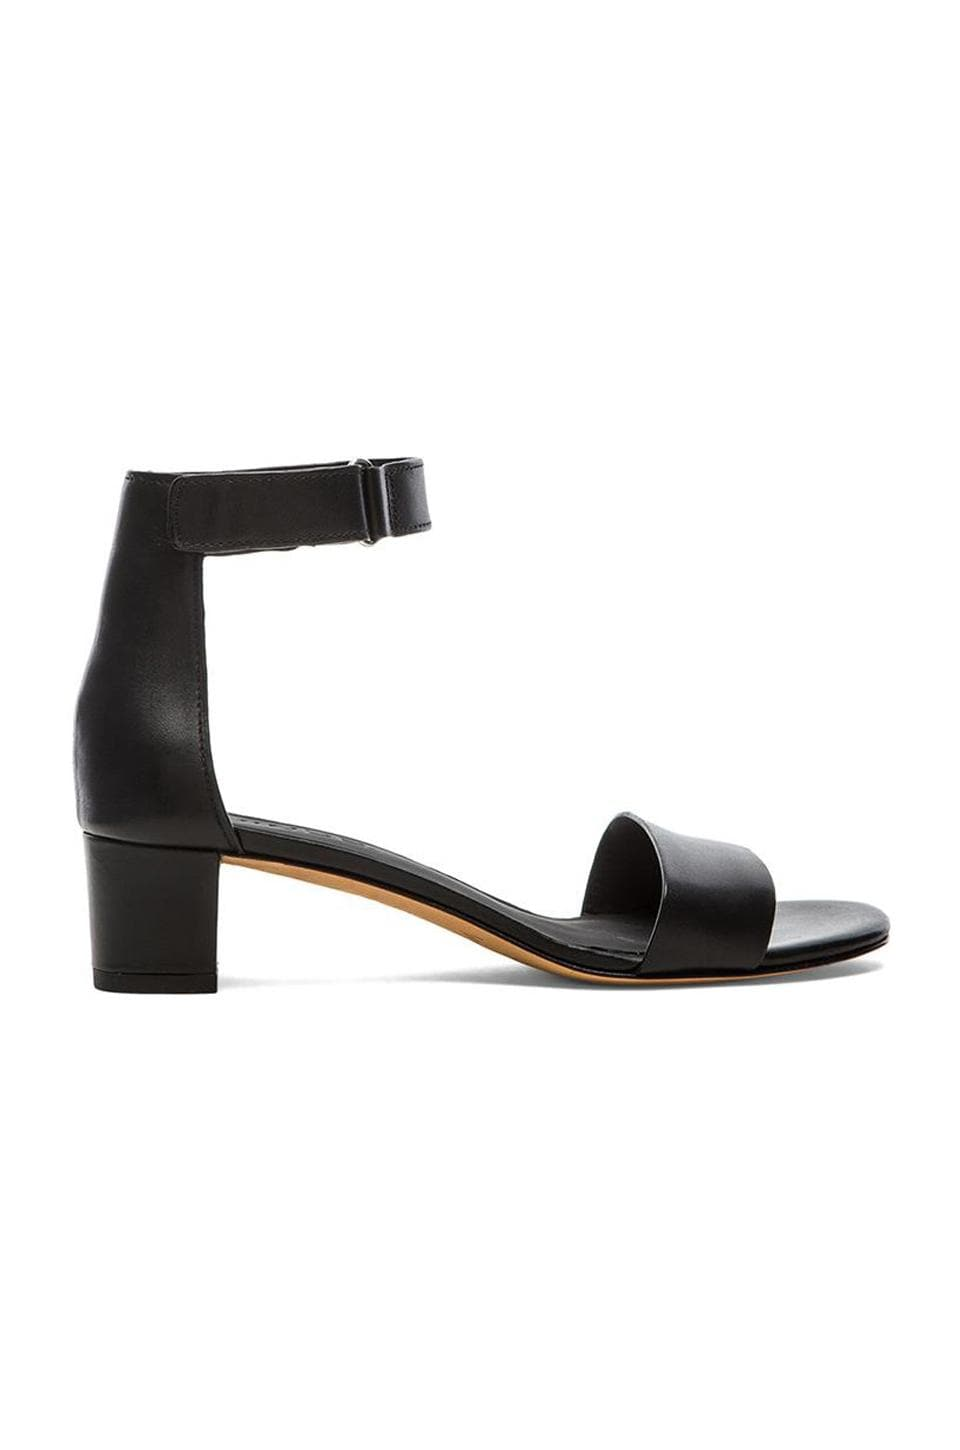 Vince Rita Sandal in Black